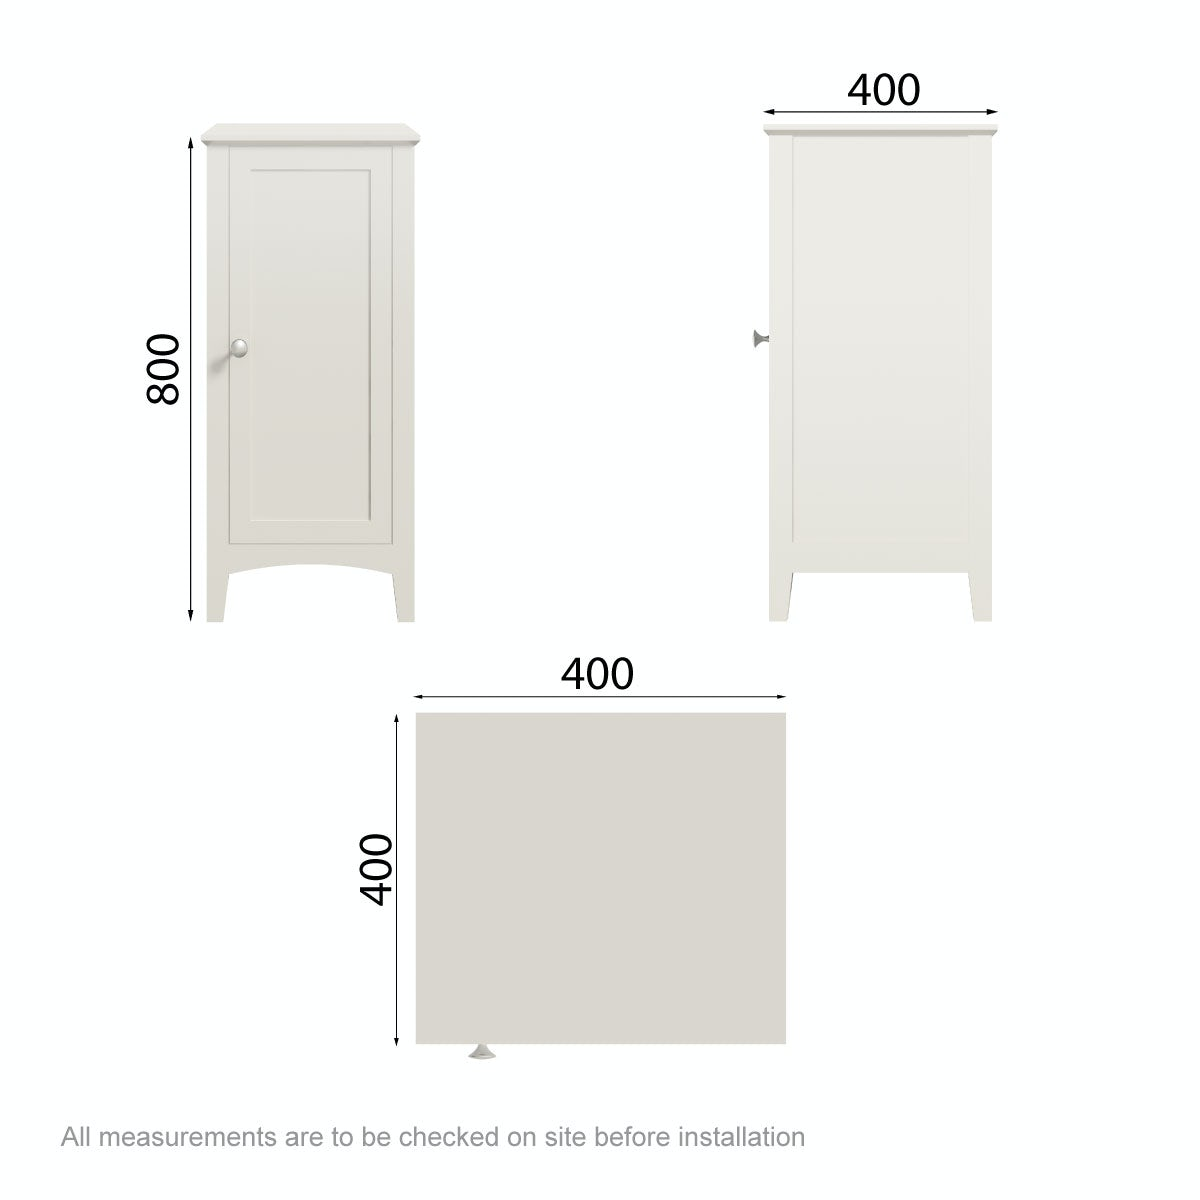 Dimensions for The Bath Co. Camberley ivory storage unit